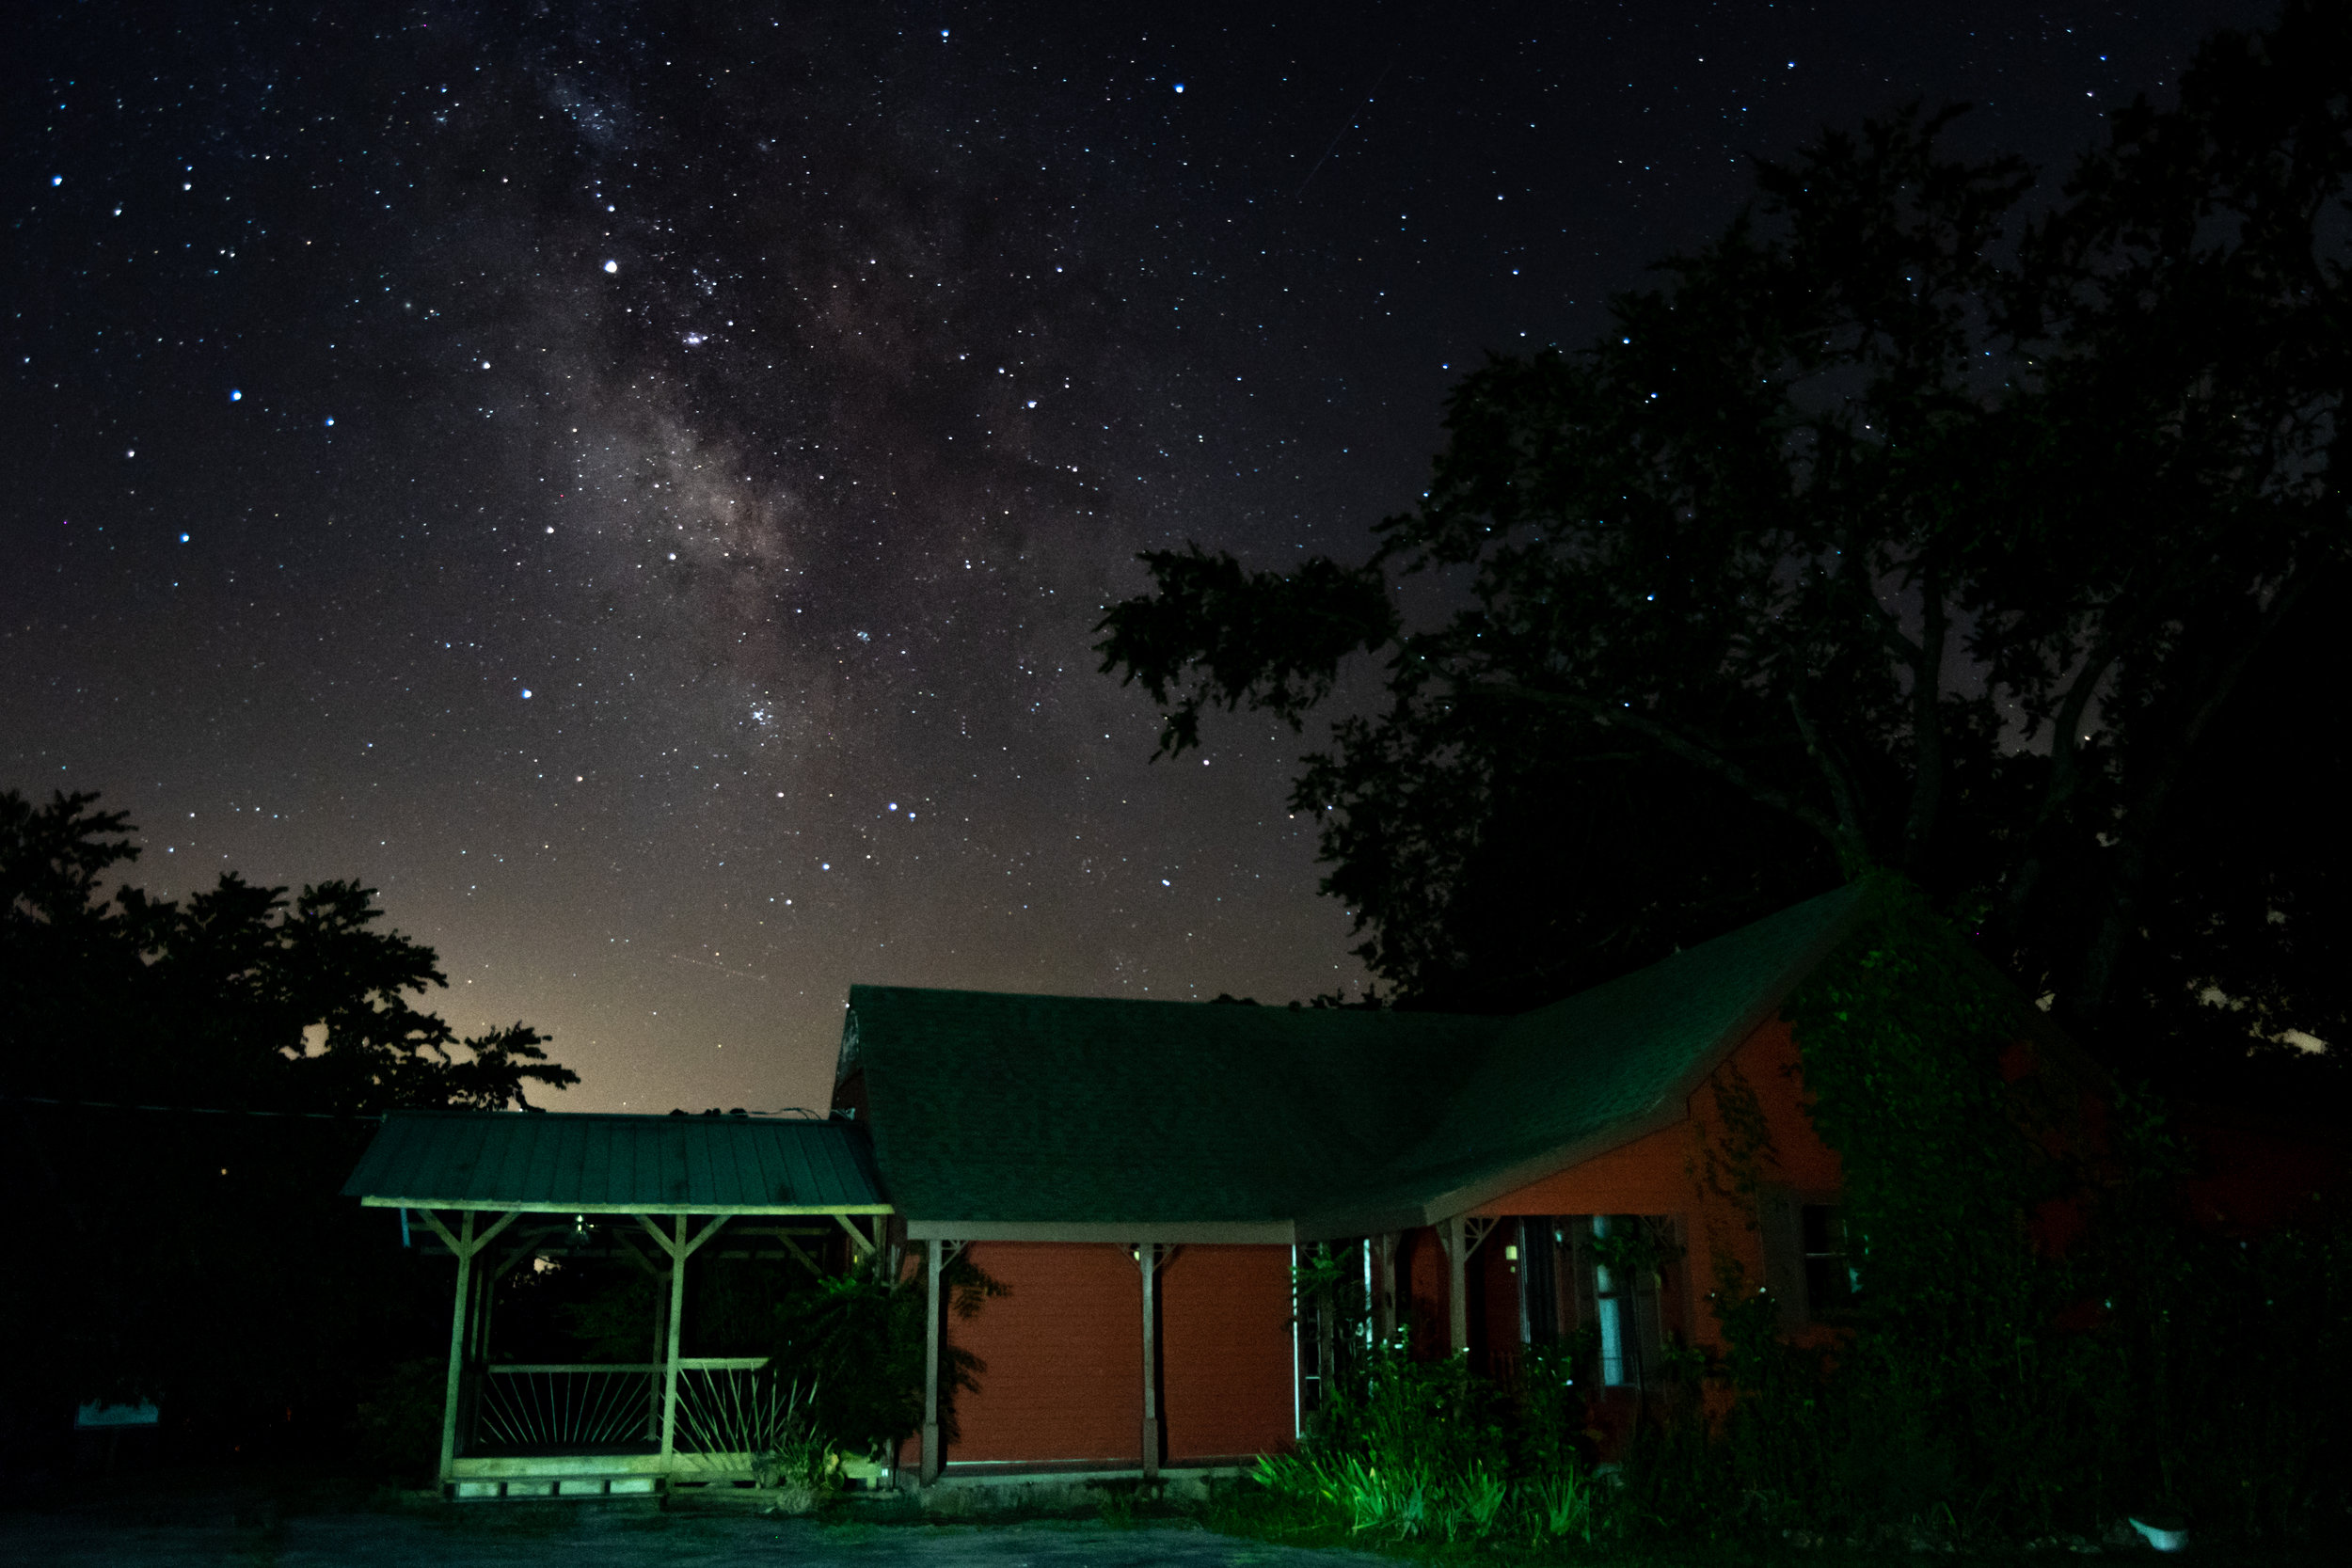 The Kings River Golf Course is closed, but this used to be the club house. It was fun finding an interesting foreground subject for one of my Milky Way shots.